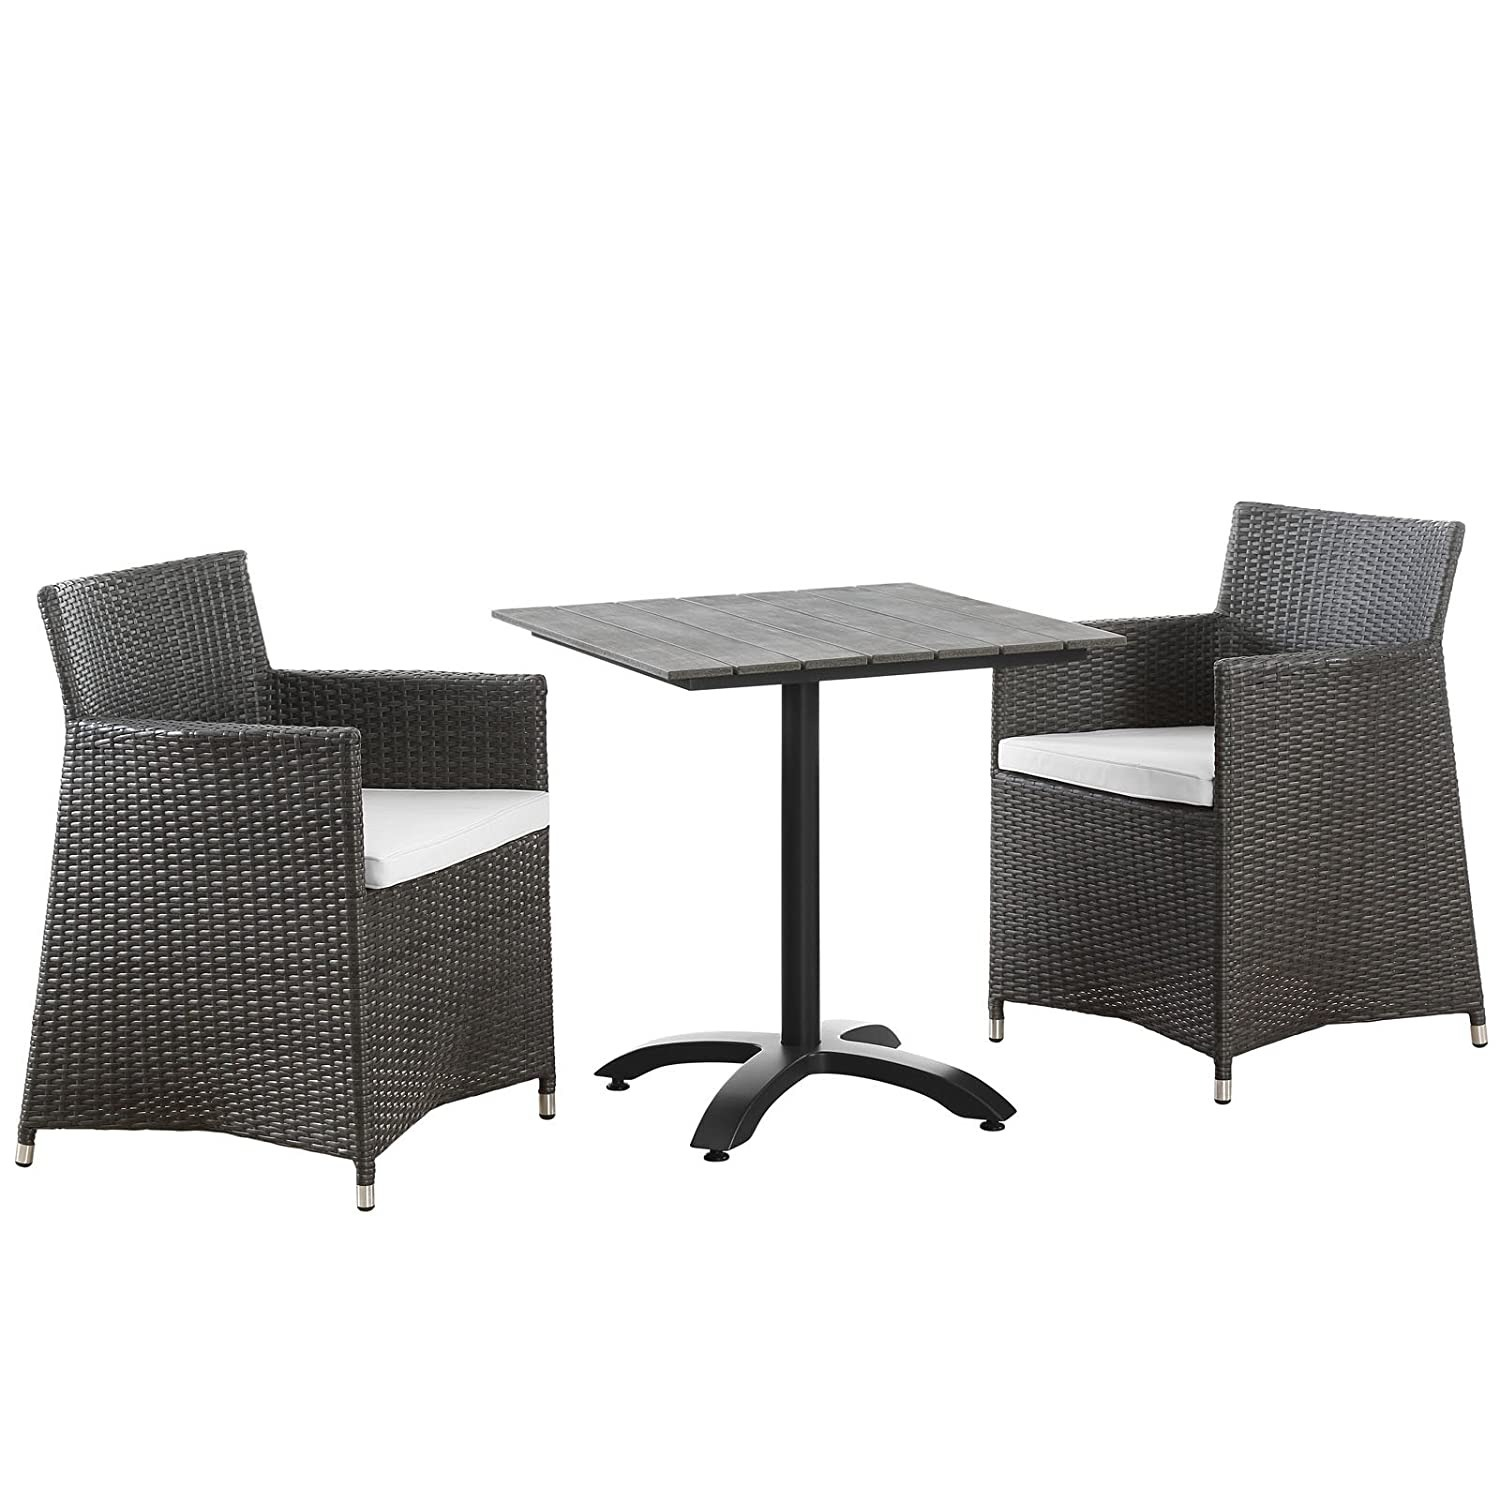 Modern 3-Piece Dining Set In Brown Rattan Weave - image-0